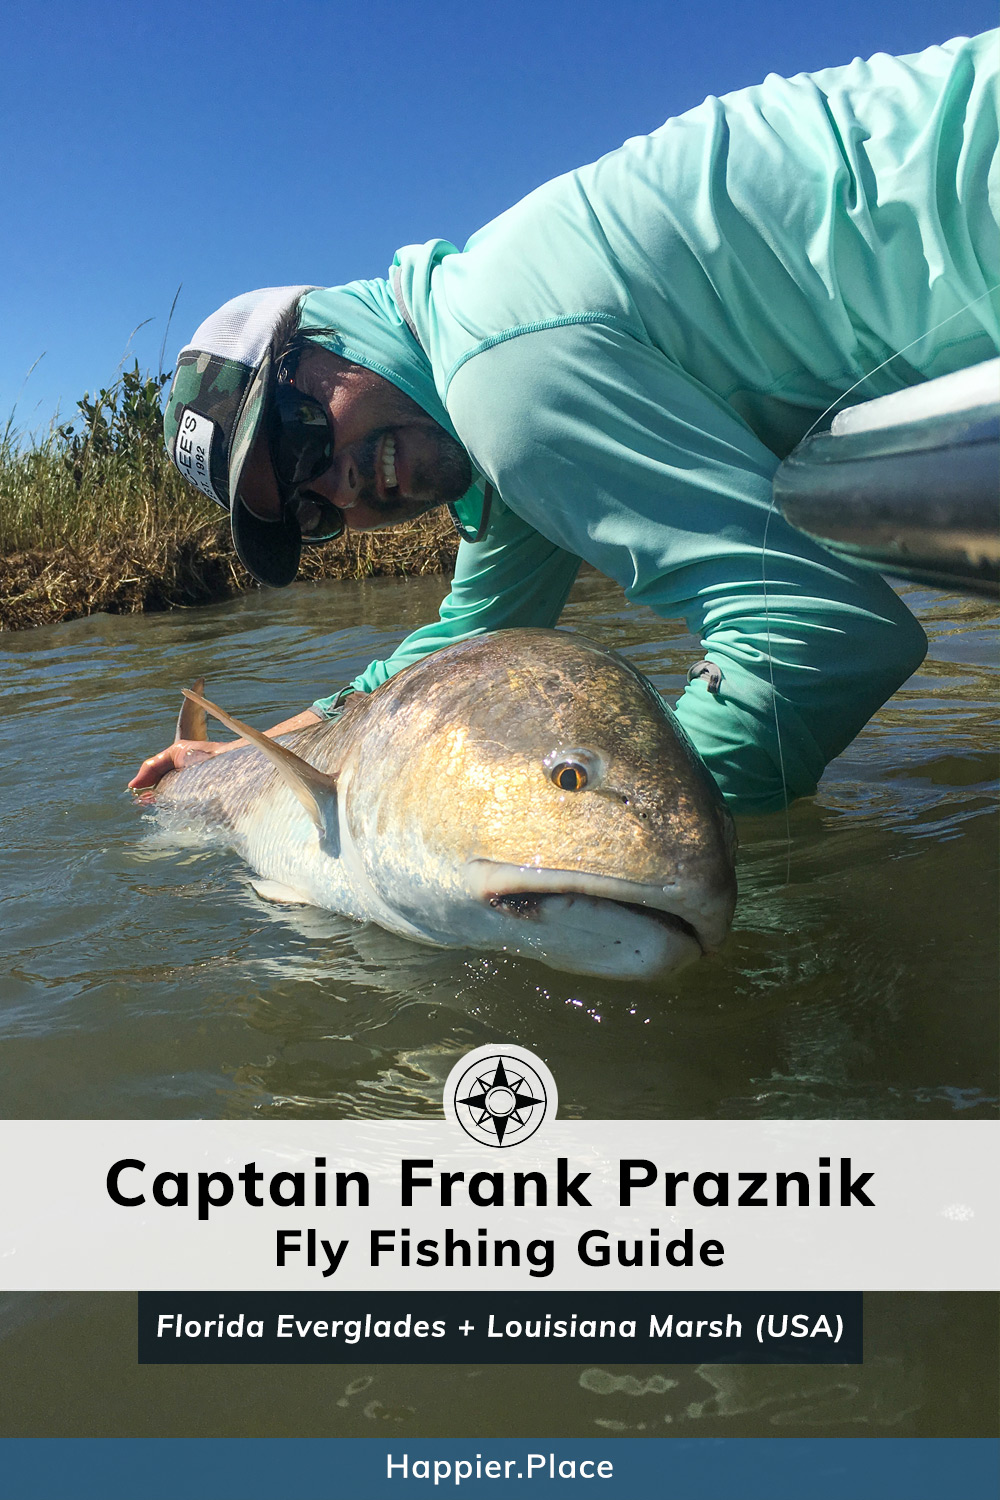 Captain Frank Praznik, Fly Fishing Guide in Louisiana Marsh and Florida Everglades. Seen here with a Red Fish.